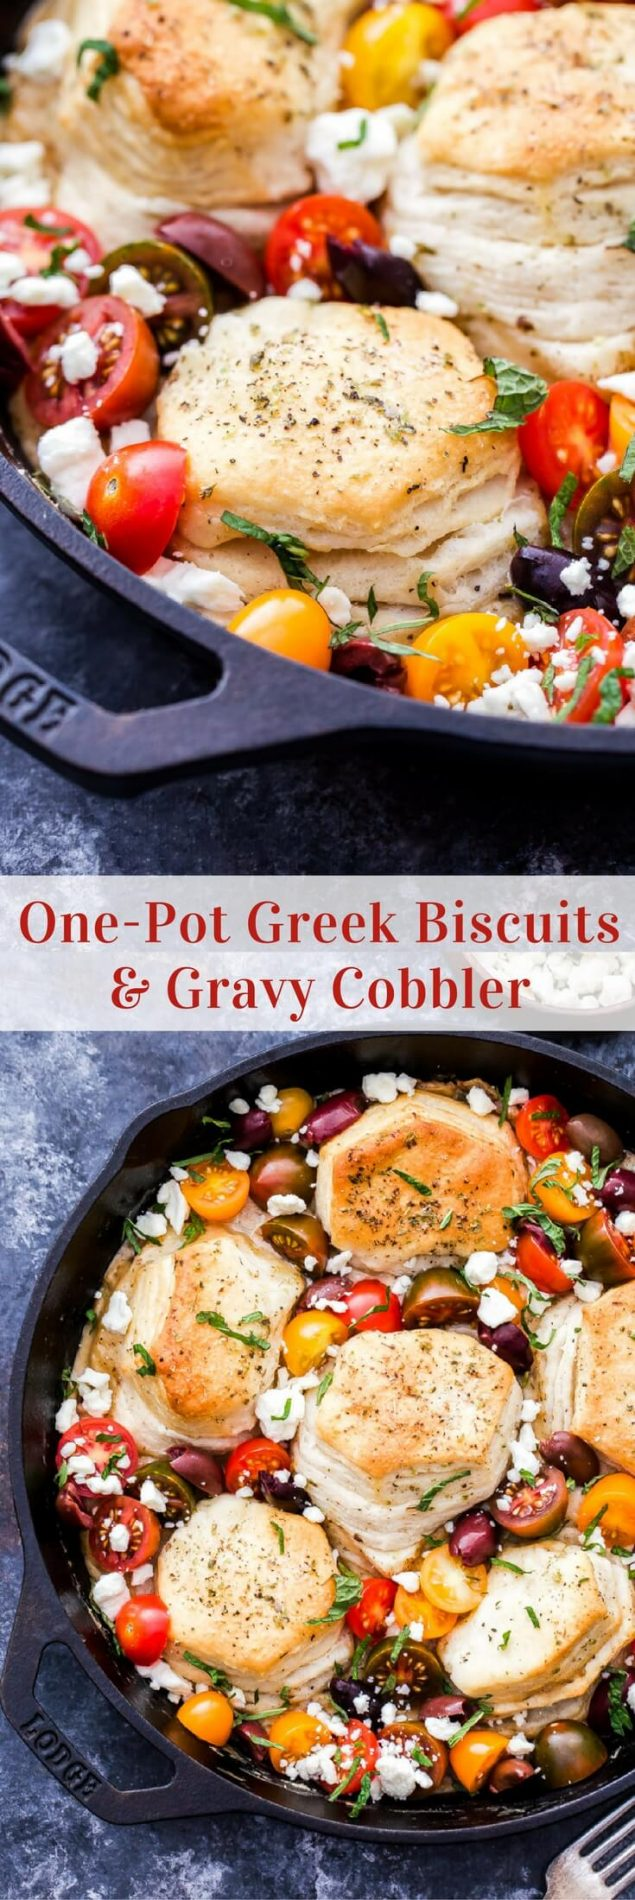 Biscuits and gravy get a delicious Greek flavored makeover and it's all made in one pot! One-Pot Greek Biscuits and Gravy Cobbler is perfect for your next brunch or whenever you need a cozy plate of comfort food! #biscuitsandgravy #brunch #breakfast #greek #sausage #feta #onepot